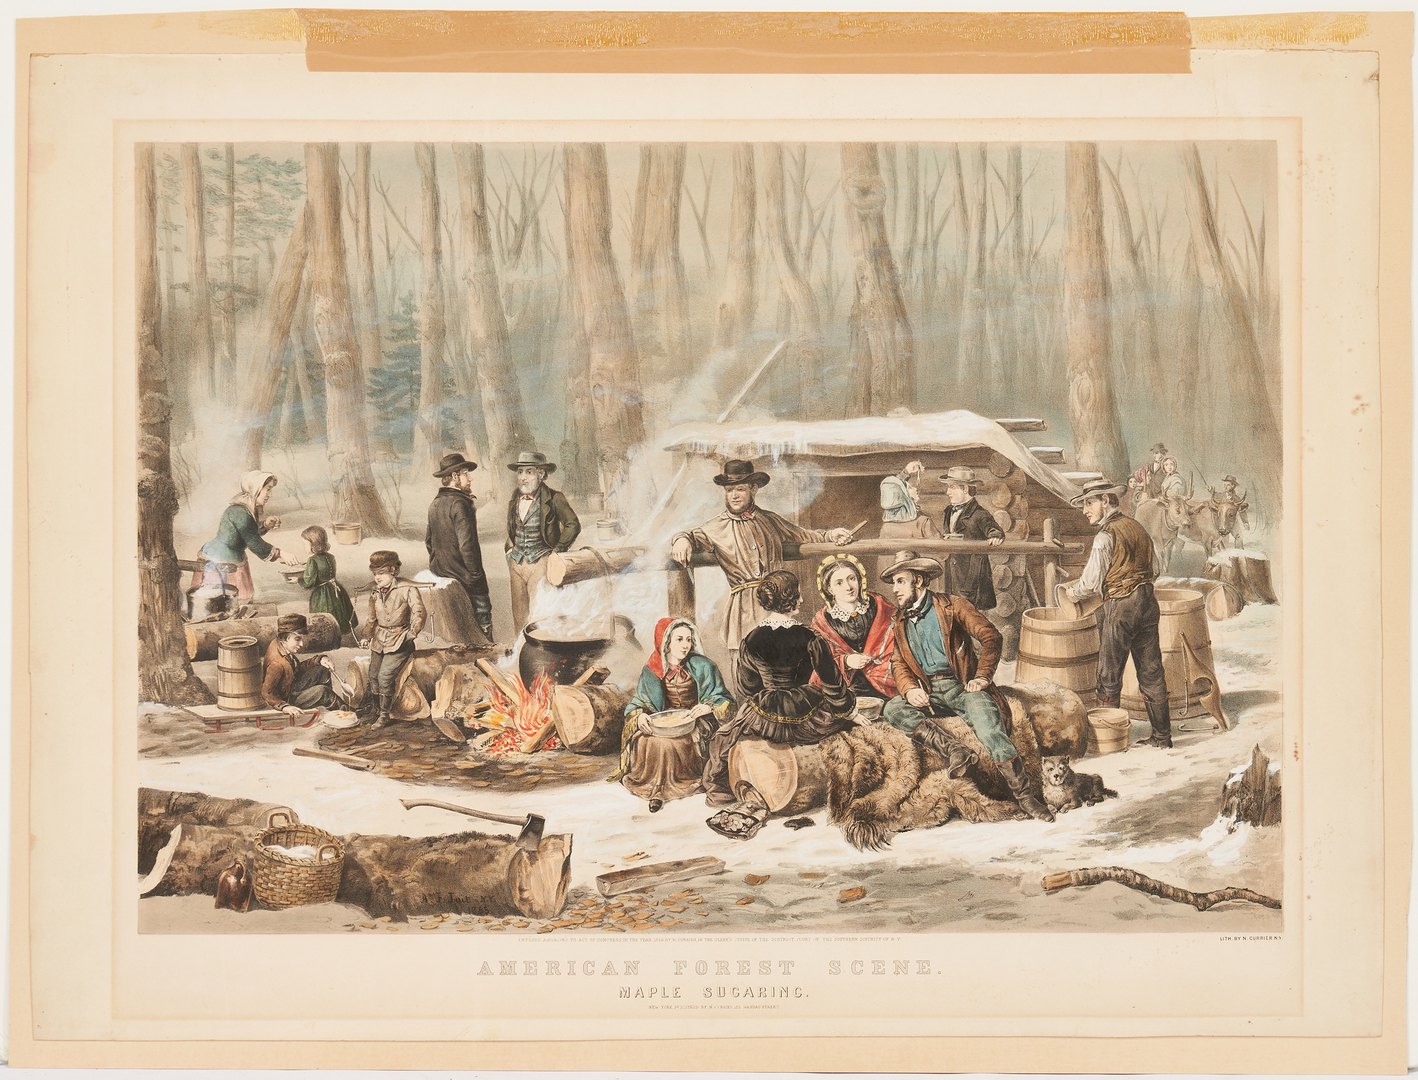 Lot 159: Currier and Ives: American Forest Scene, Maple Sugaring 1856